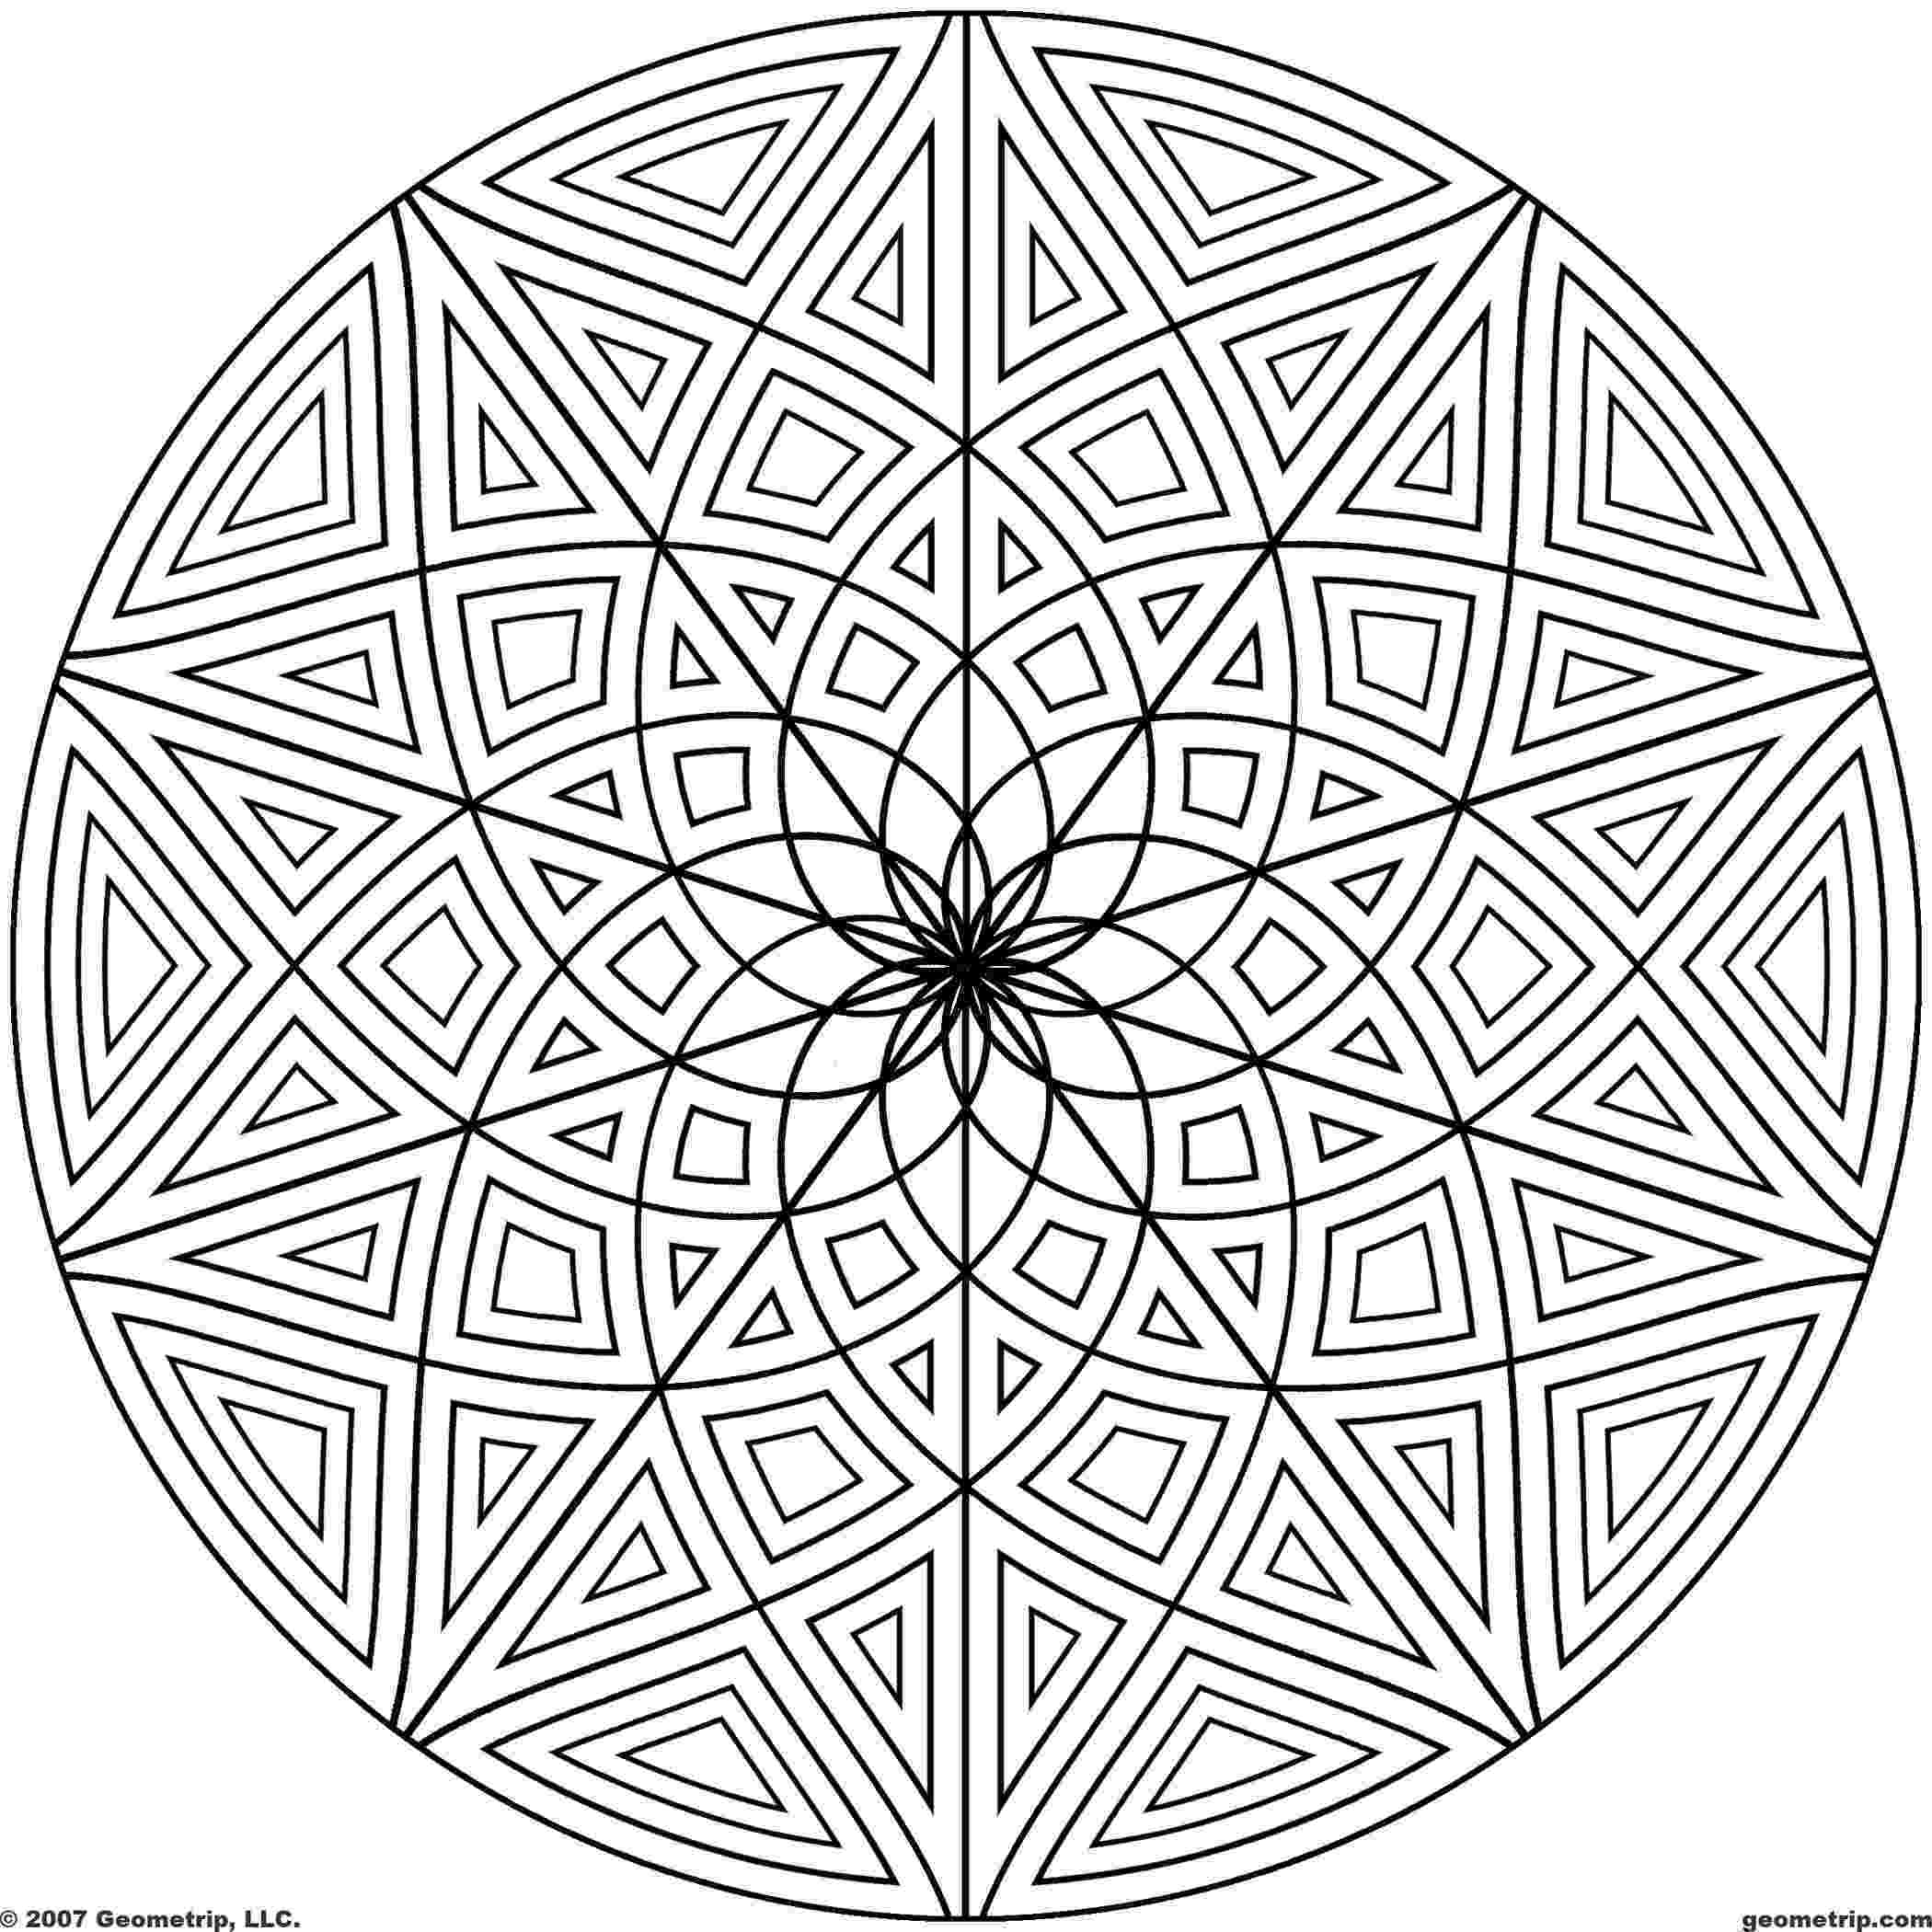 patterns colouring pattern coloring pages the sun flower pages patterns colouring